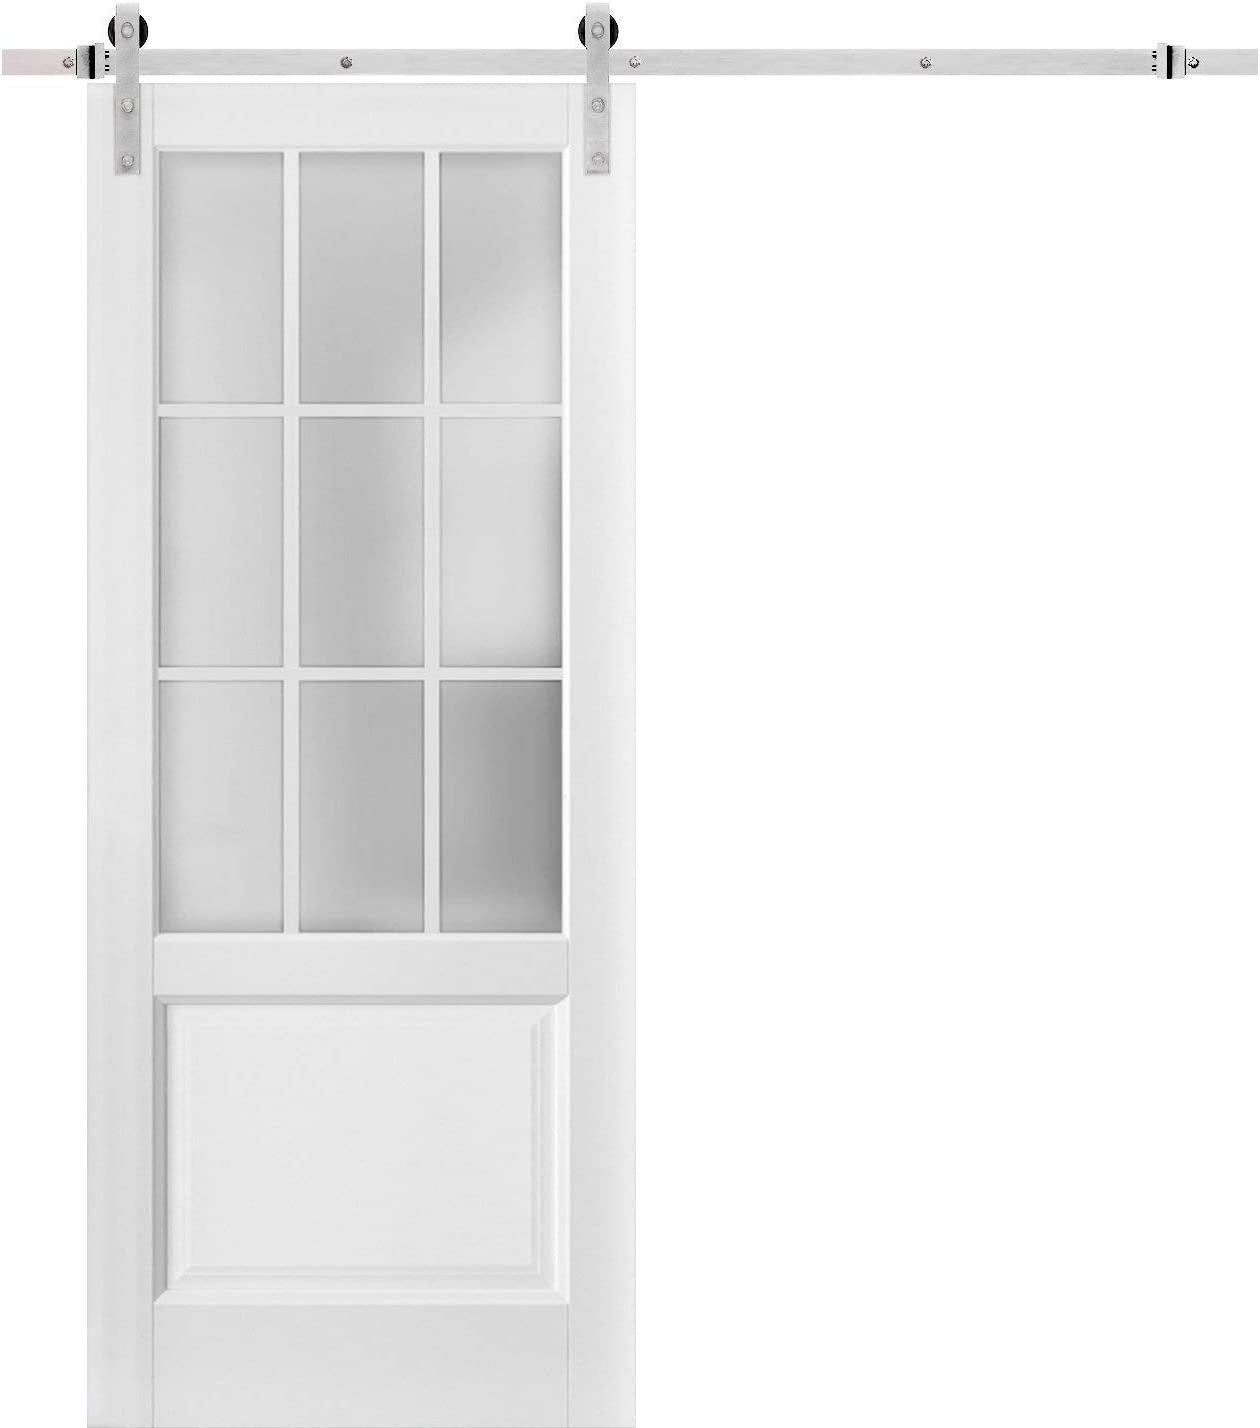 Sturdy Barn Direct store Door favorite 28 x 84 9 Frosted inches Felicia Lites Glass